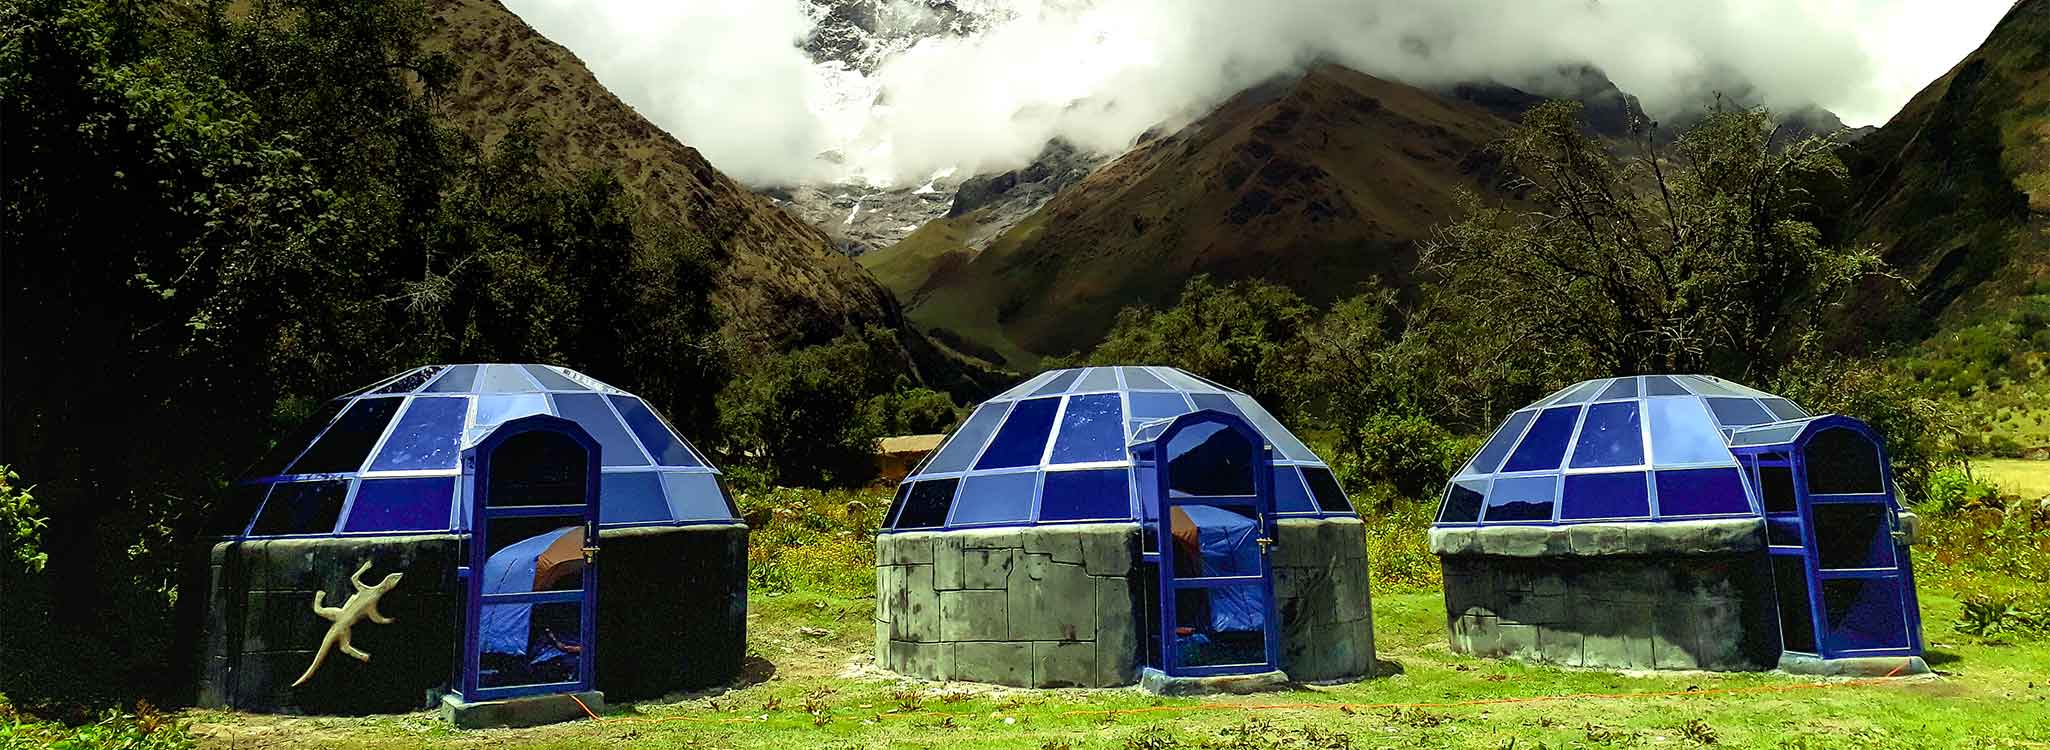 The sacred Salkantay trek in 5 days with sky domes